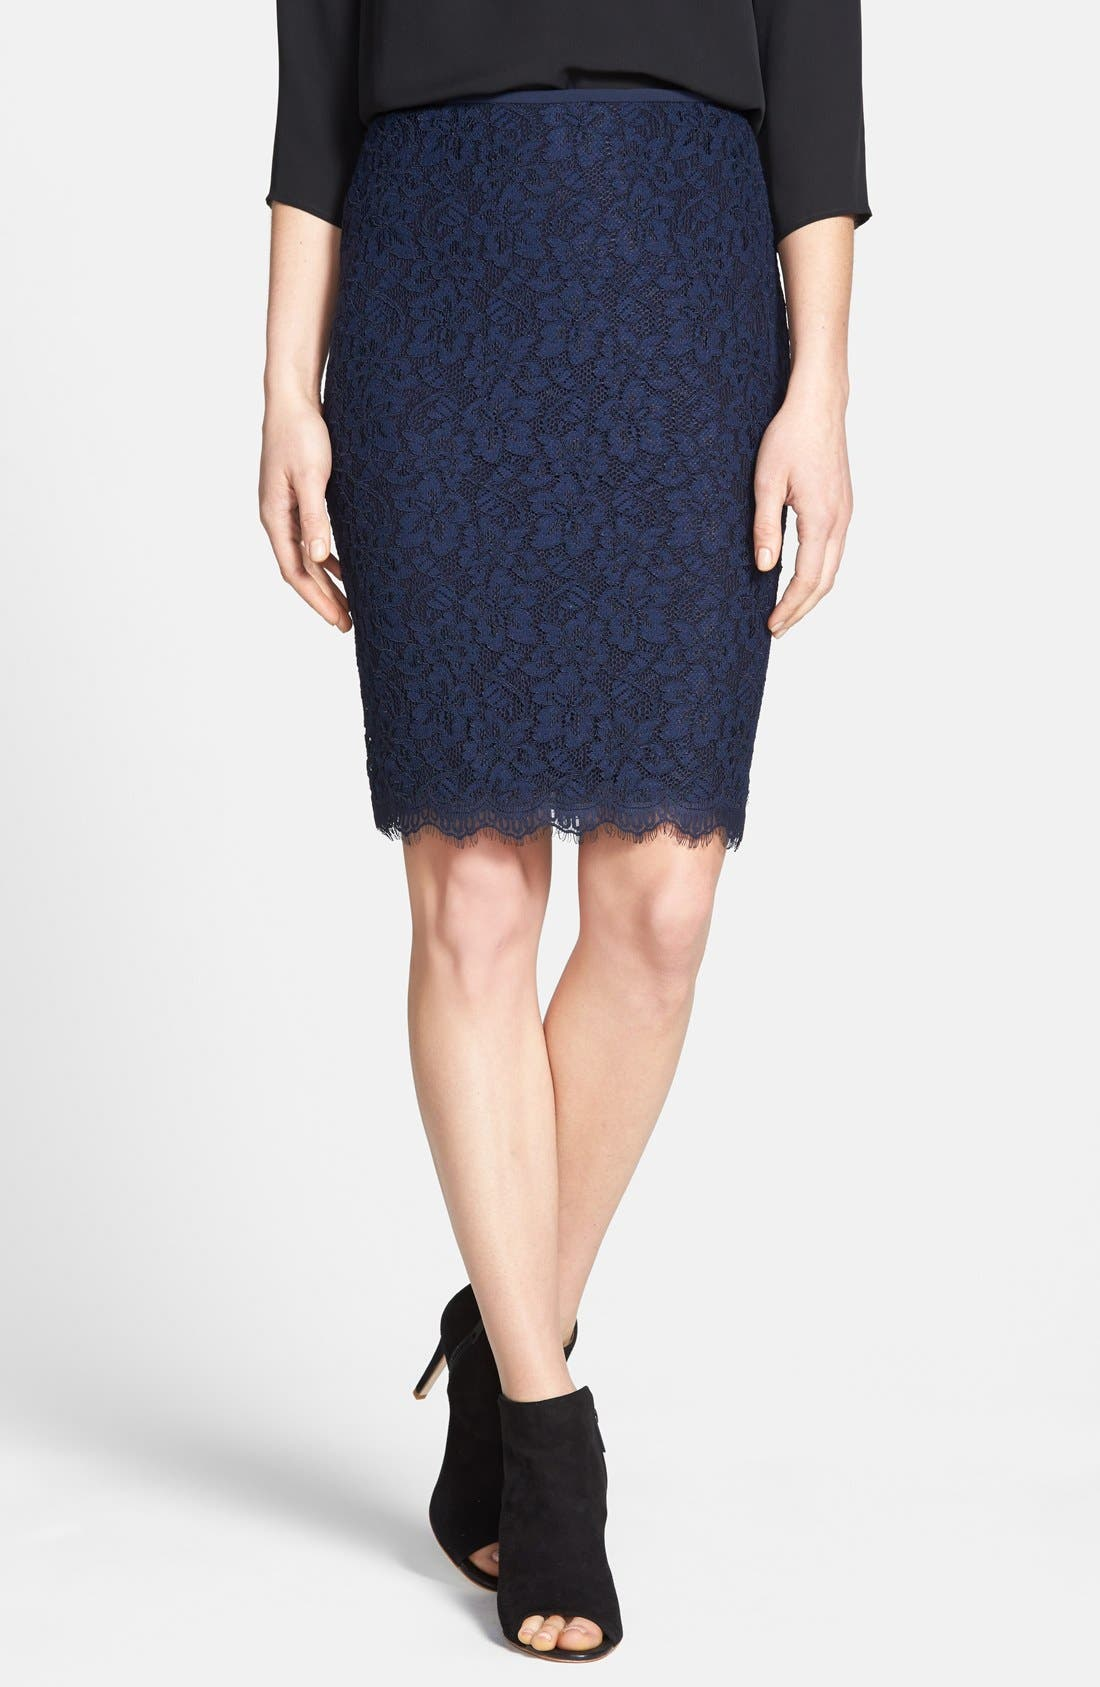 Alternate Image 1 Selected - Diane von Furstenberg 'Scotia' Lace Pencil Skirt